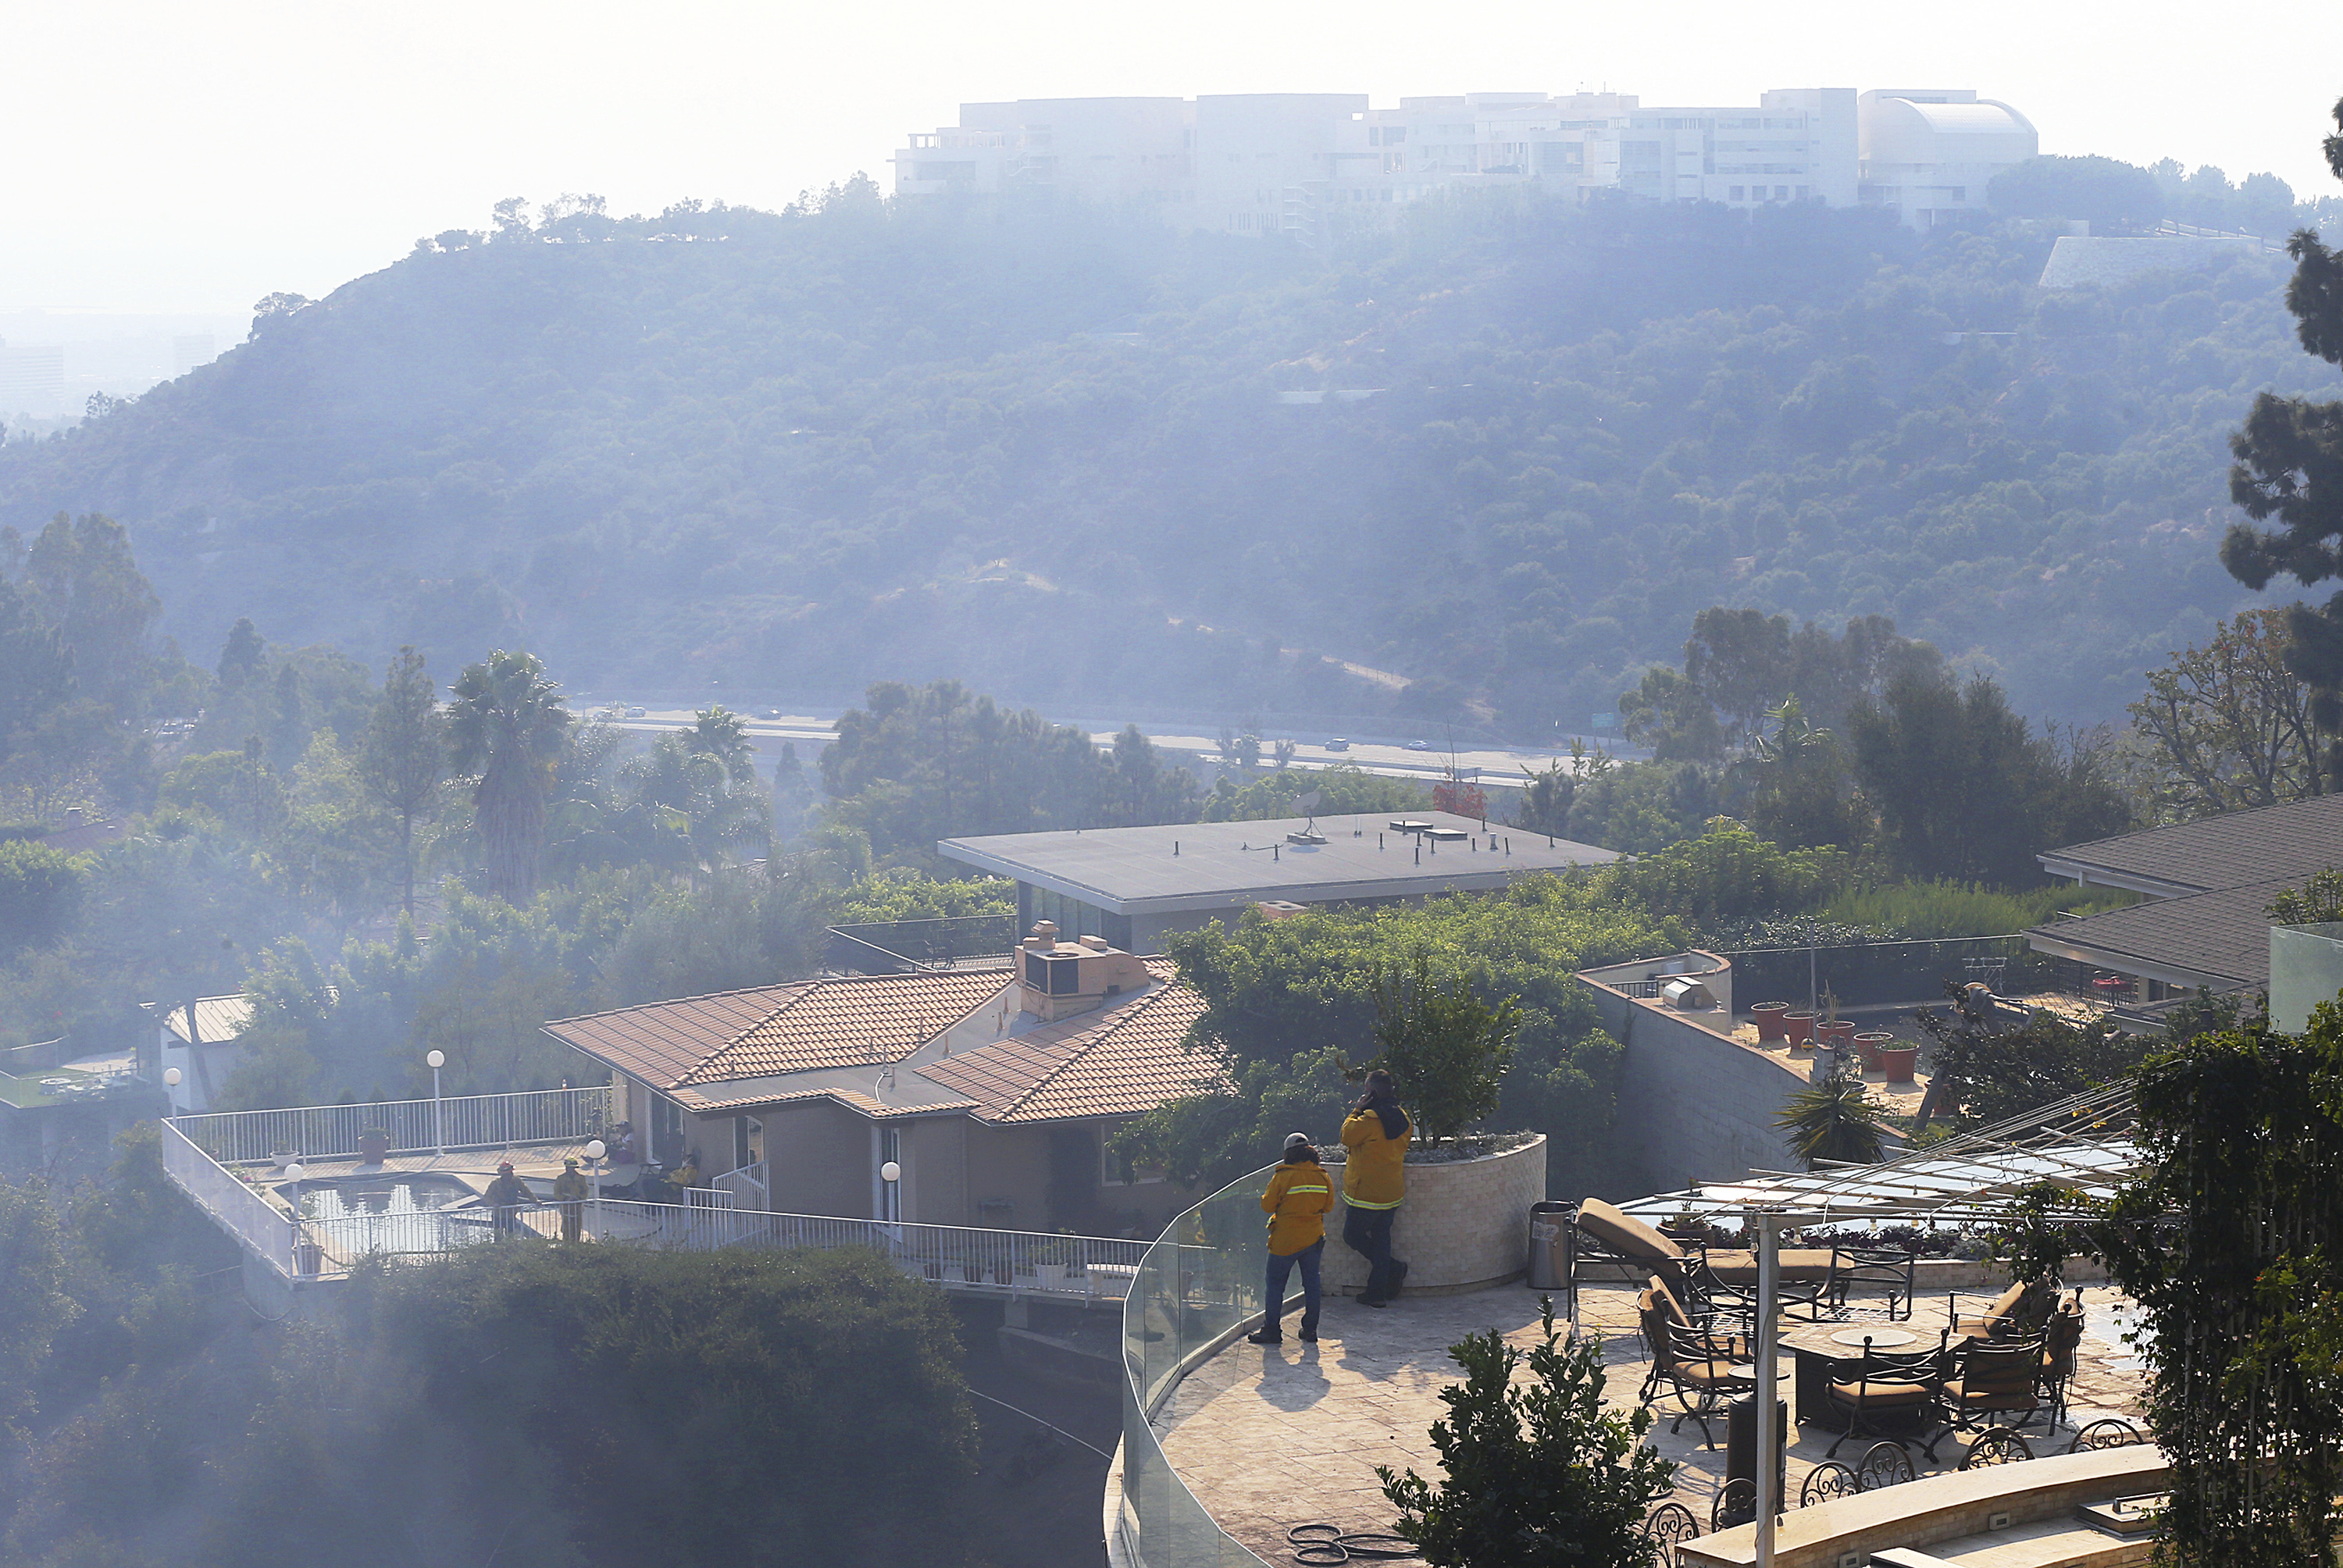 "<div class=""meta image-caption""><div class=""origin-logo origin-image none""><span>none</span></div><span class=""caption-text"">The Getty Center lies shrouded in smoke as firefighters keep watch on a nearby canyon from the terraces of homes in the Bel Air district on Wednesday, Dec. 6, 2017. (Reed Saxon/AP Photo)</span></div>"